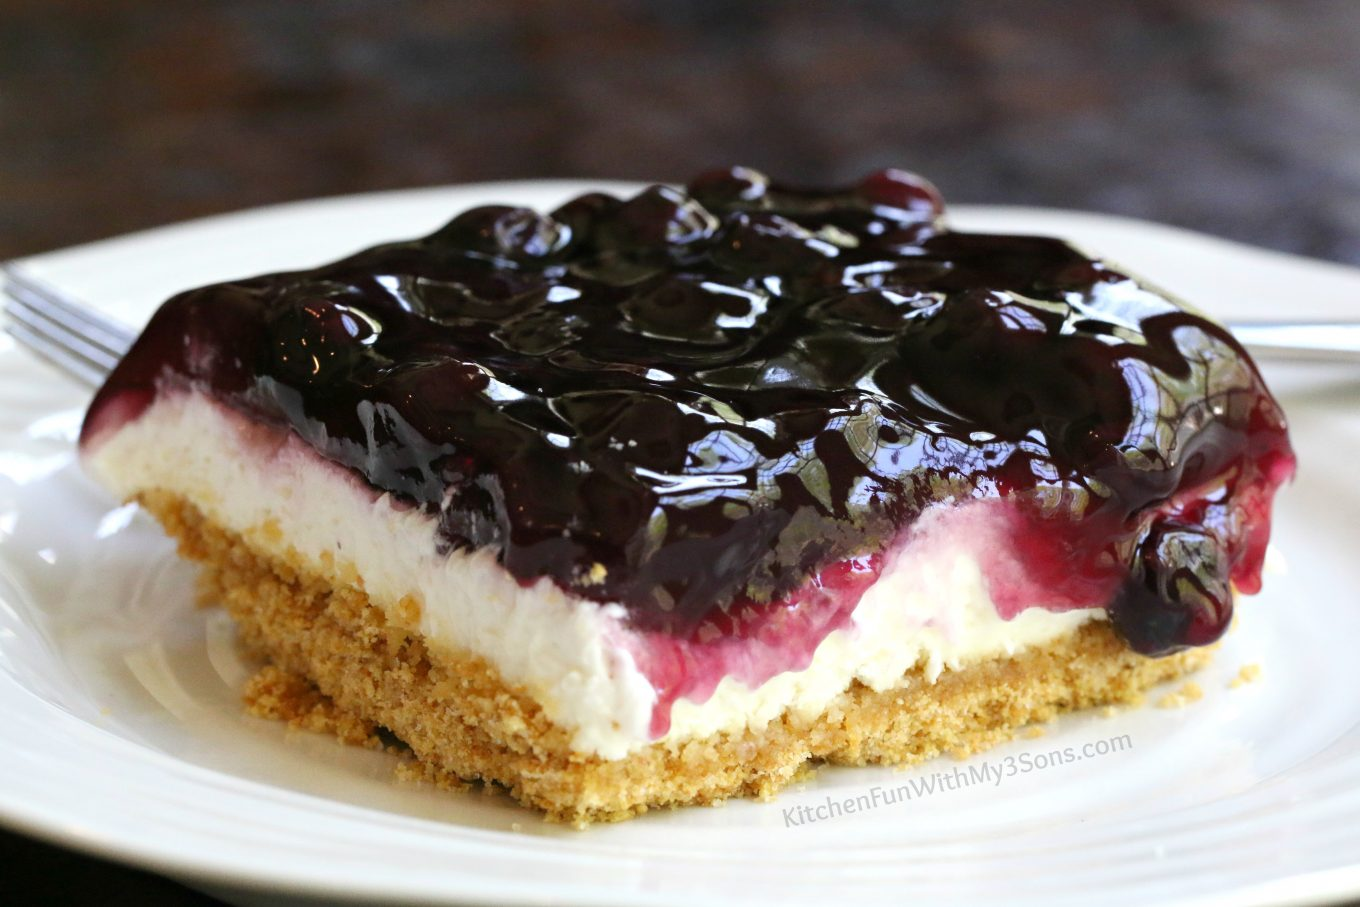 Sugar Free Blueberry Cake